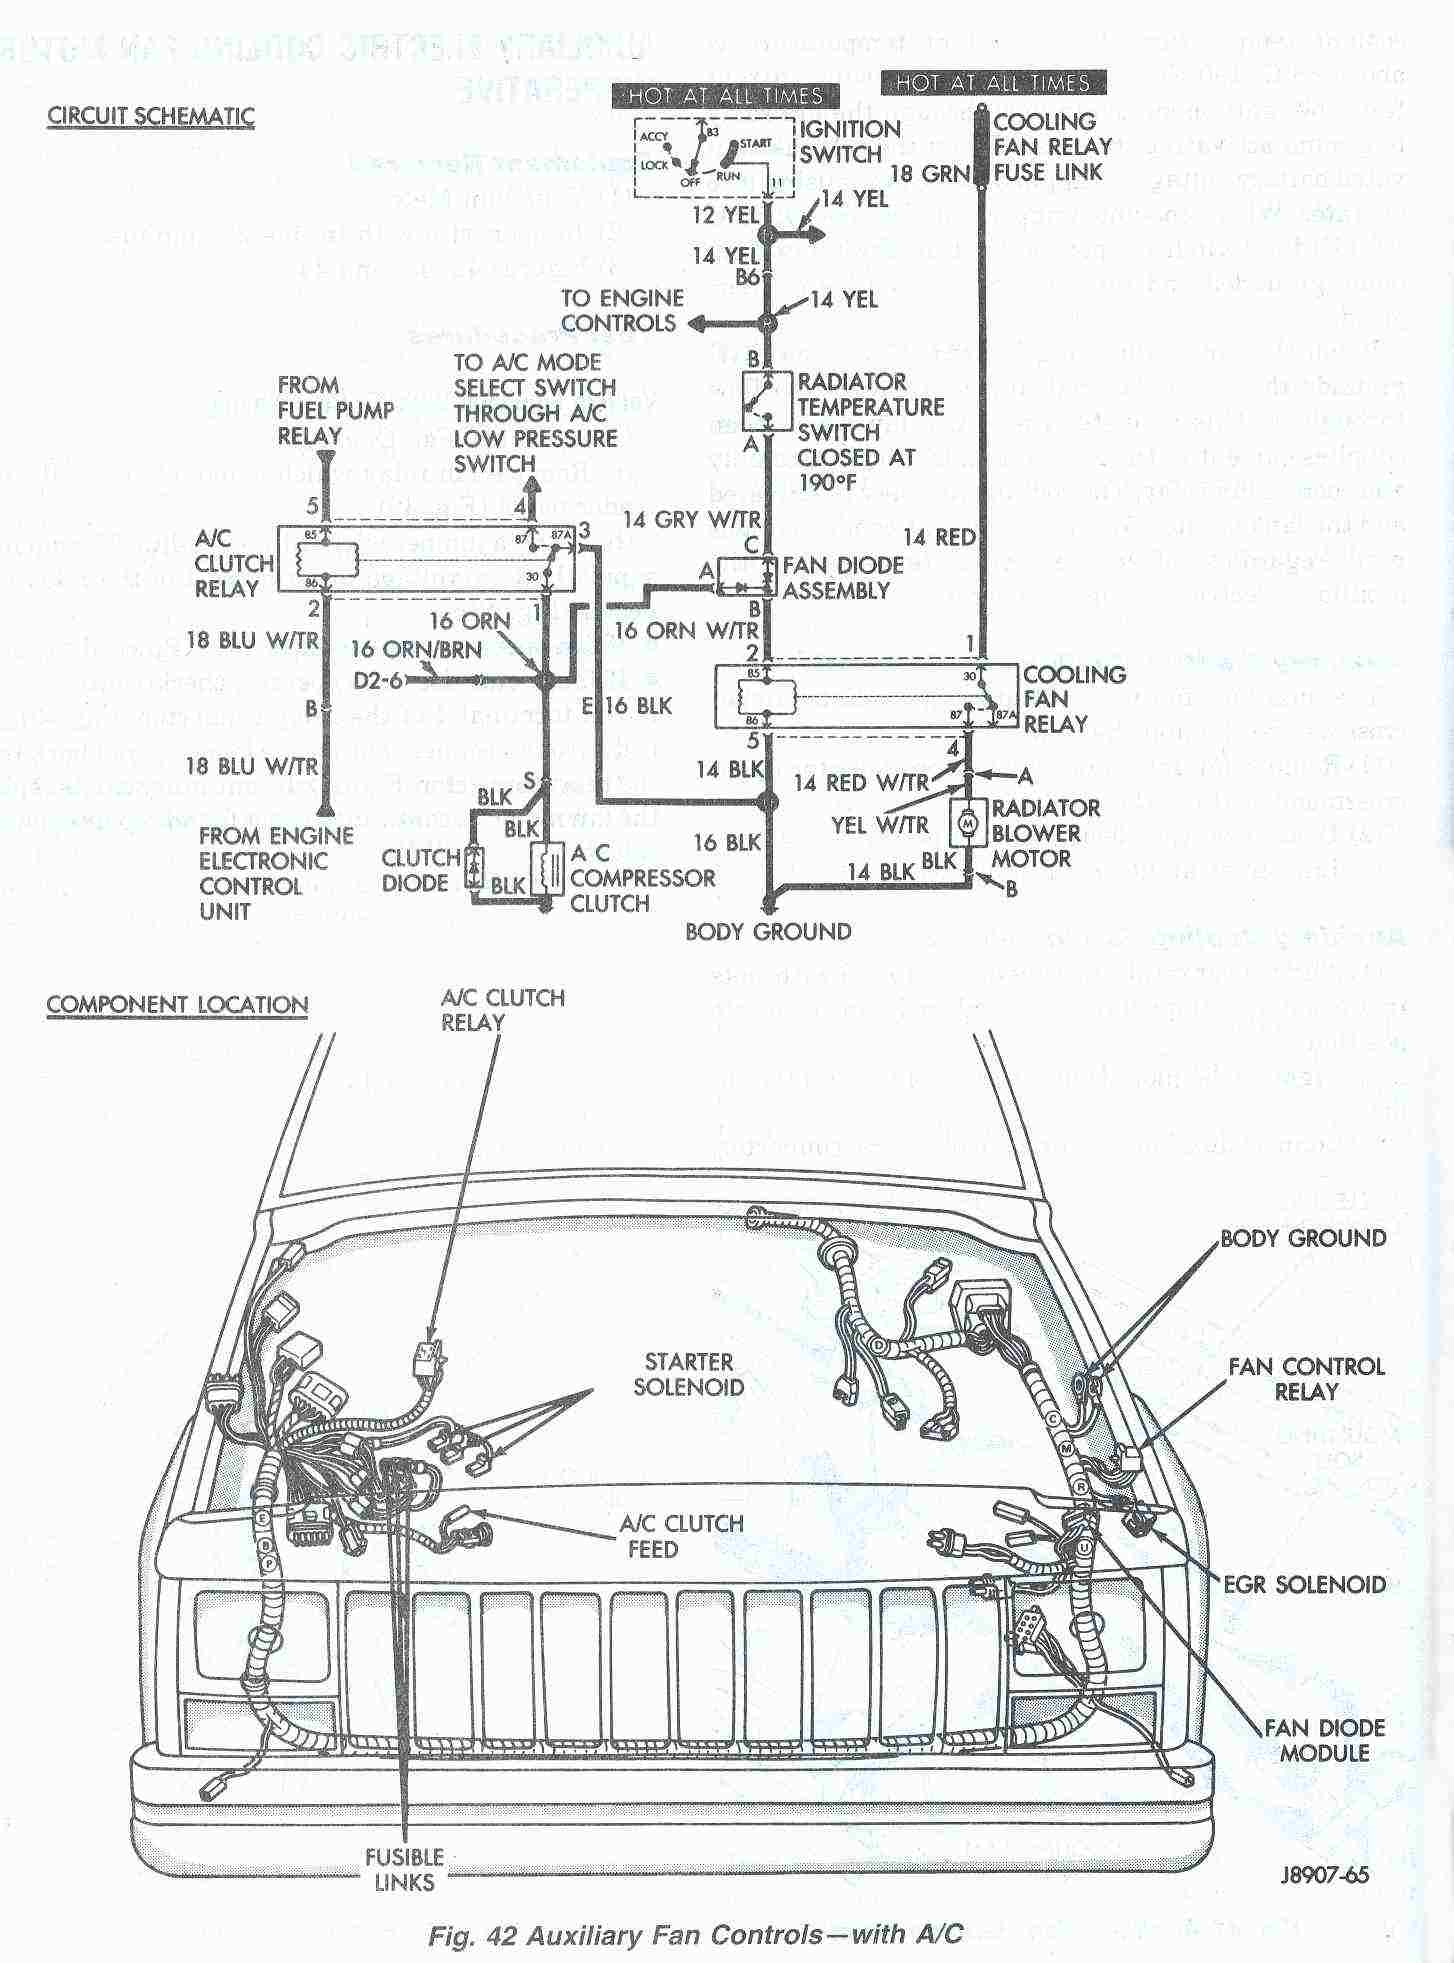 Auxiliary_Fan_Schematic_Fig_42 connectors cherokee diagrams jeep, jeep cherokee, jeep cherokee xj